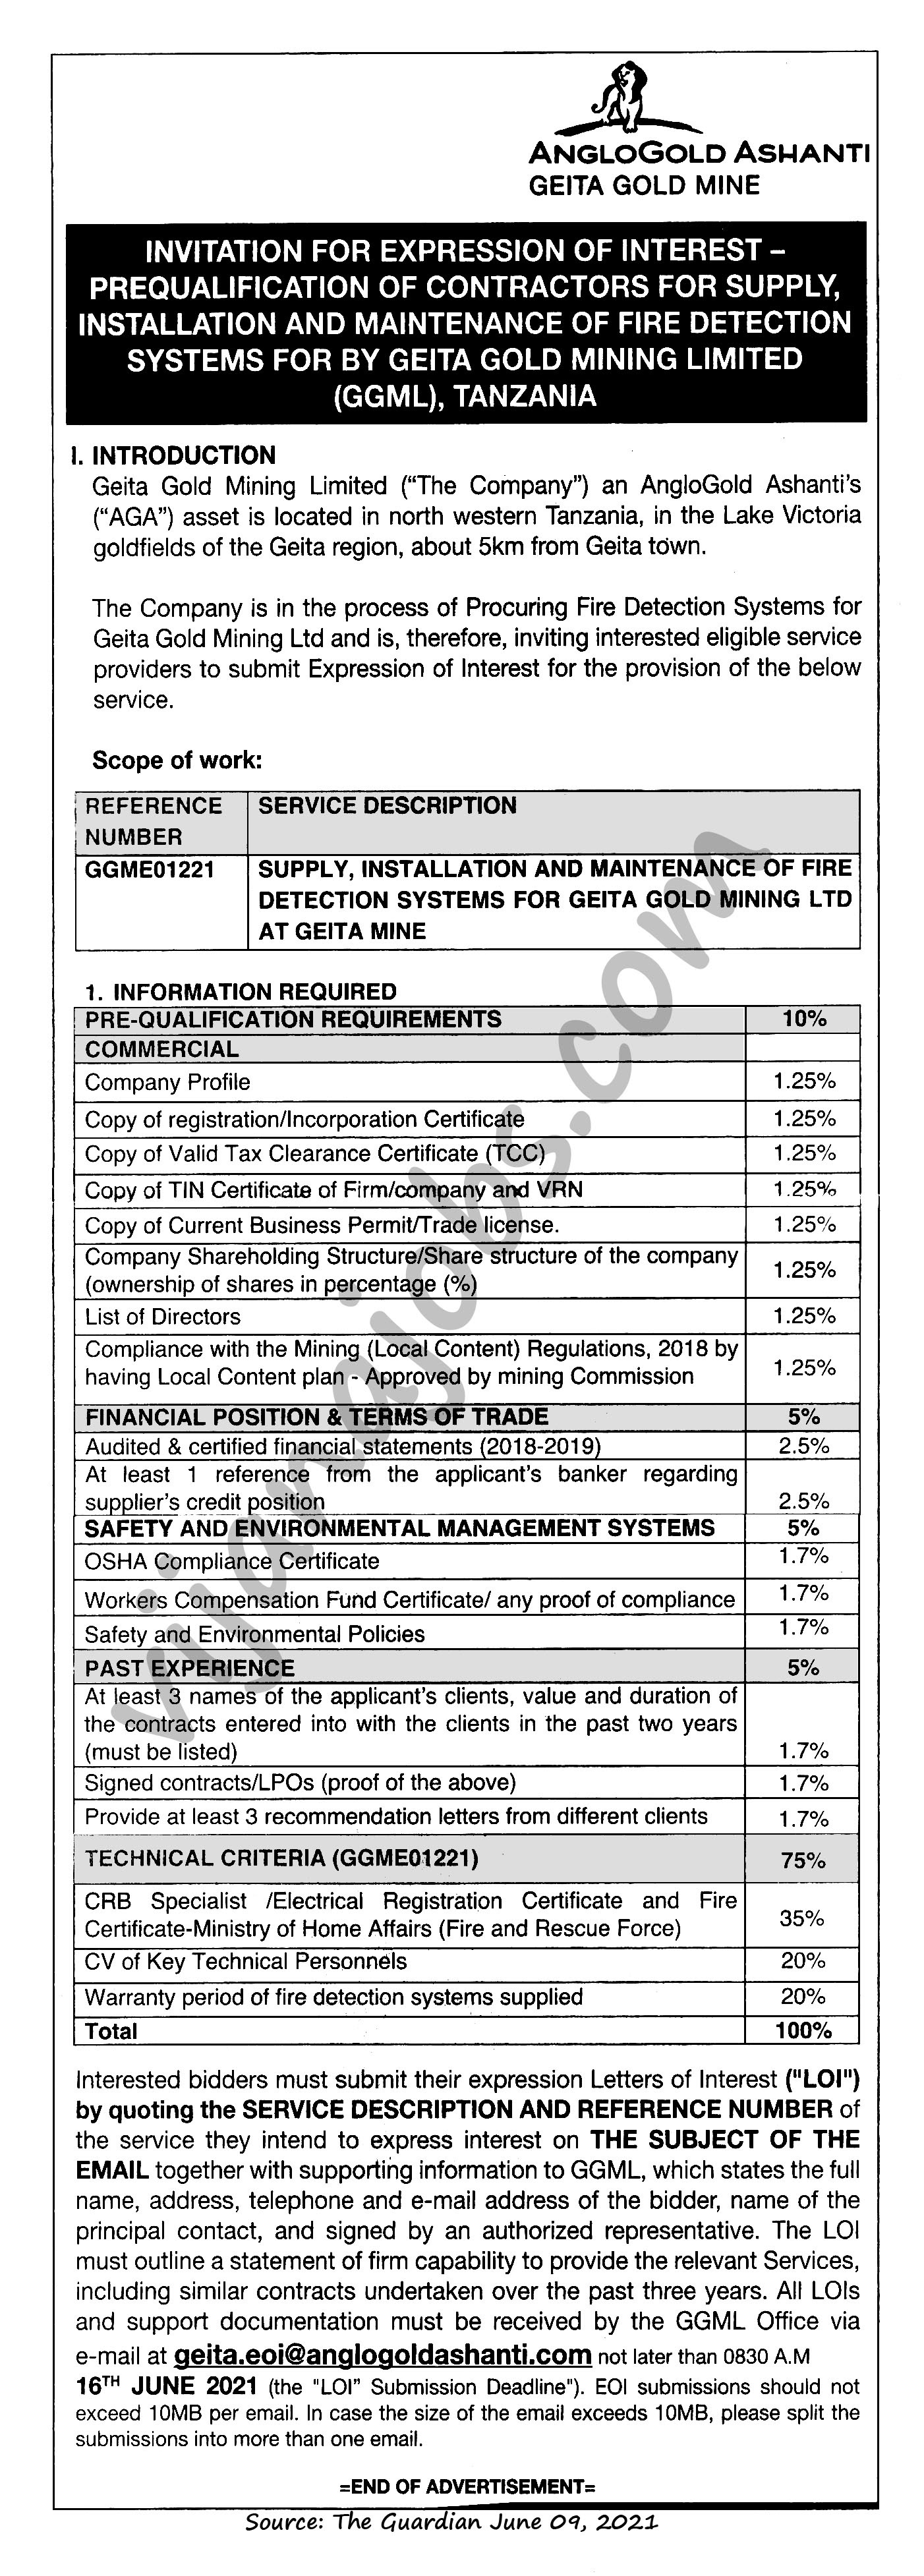 Invitation for Expression of Interest- Prequalification of Contractors for Supply, Installation and Maintanance of Fire Detection Systems